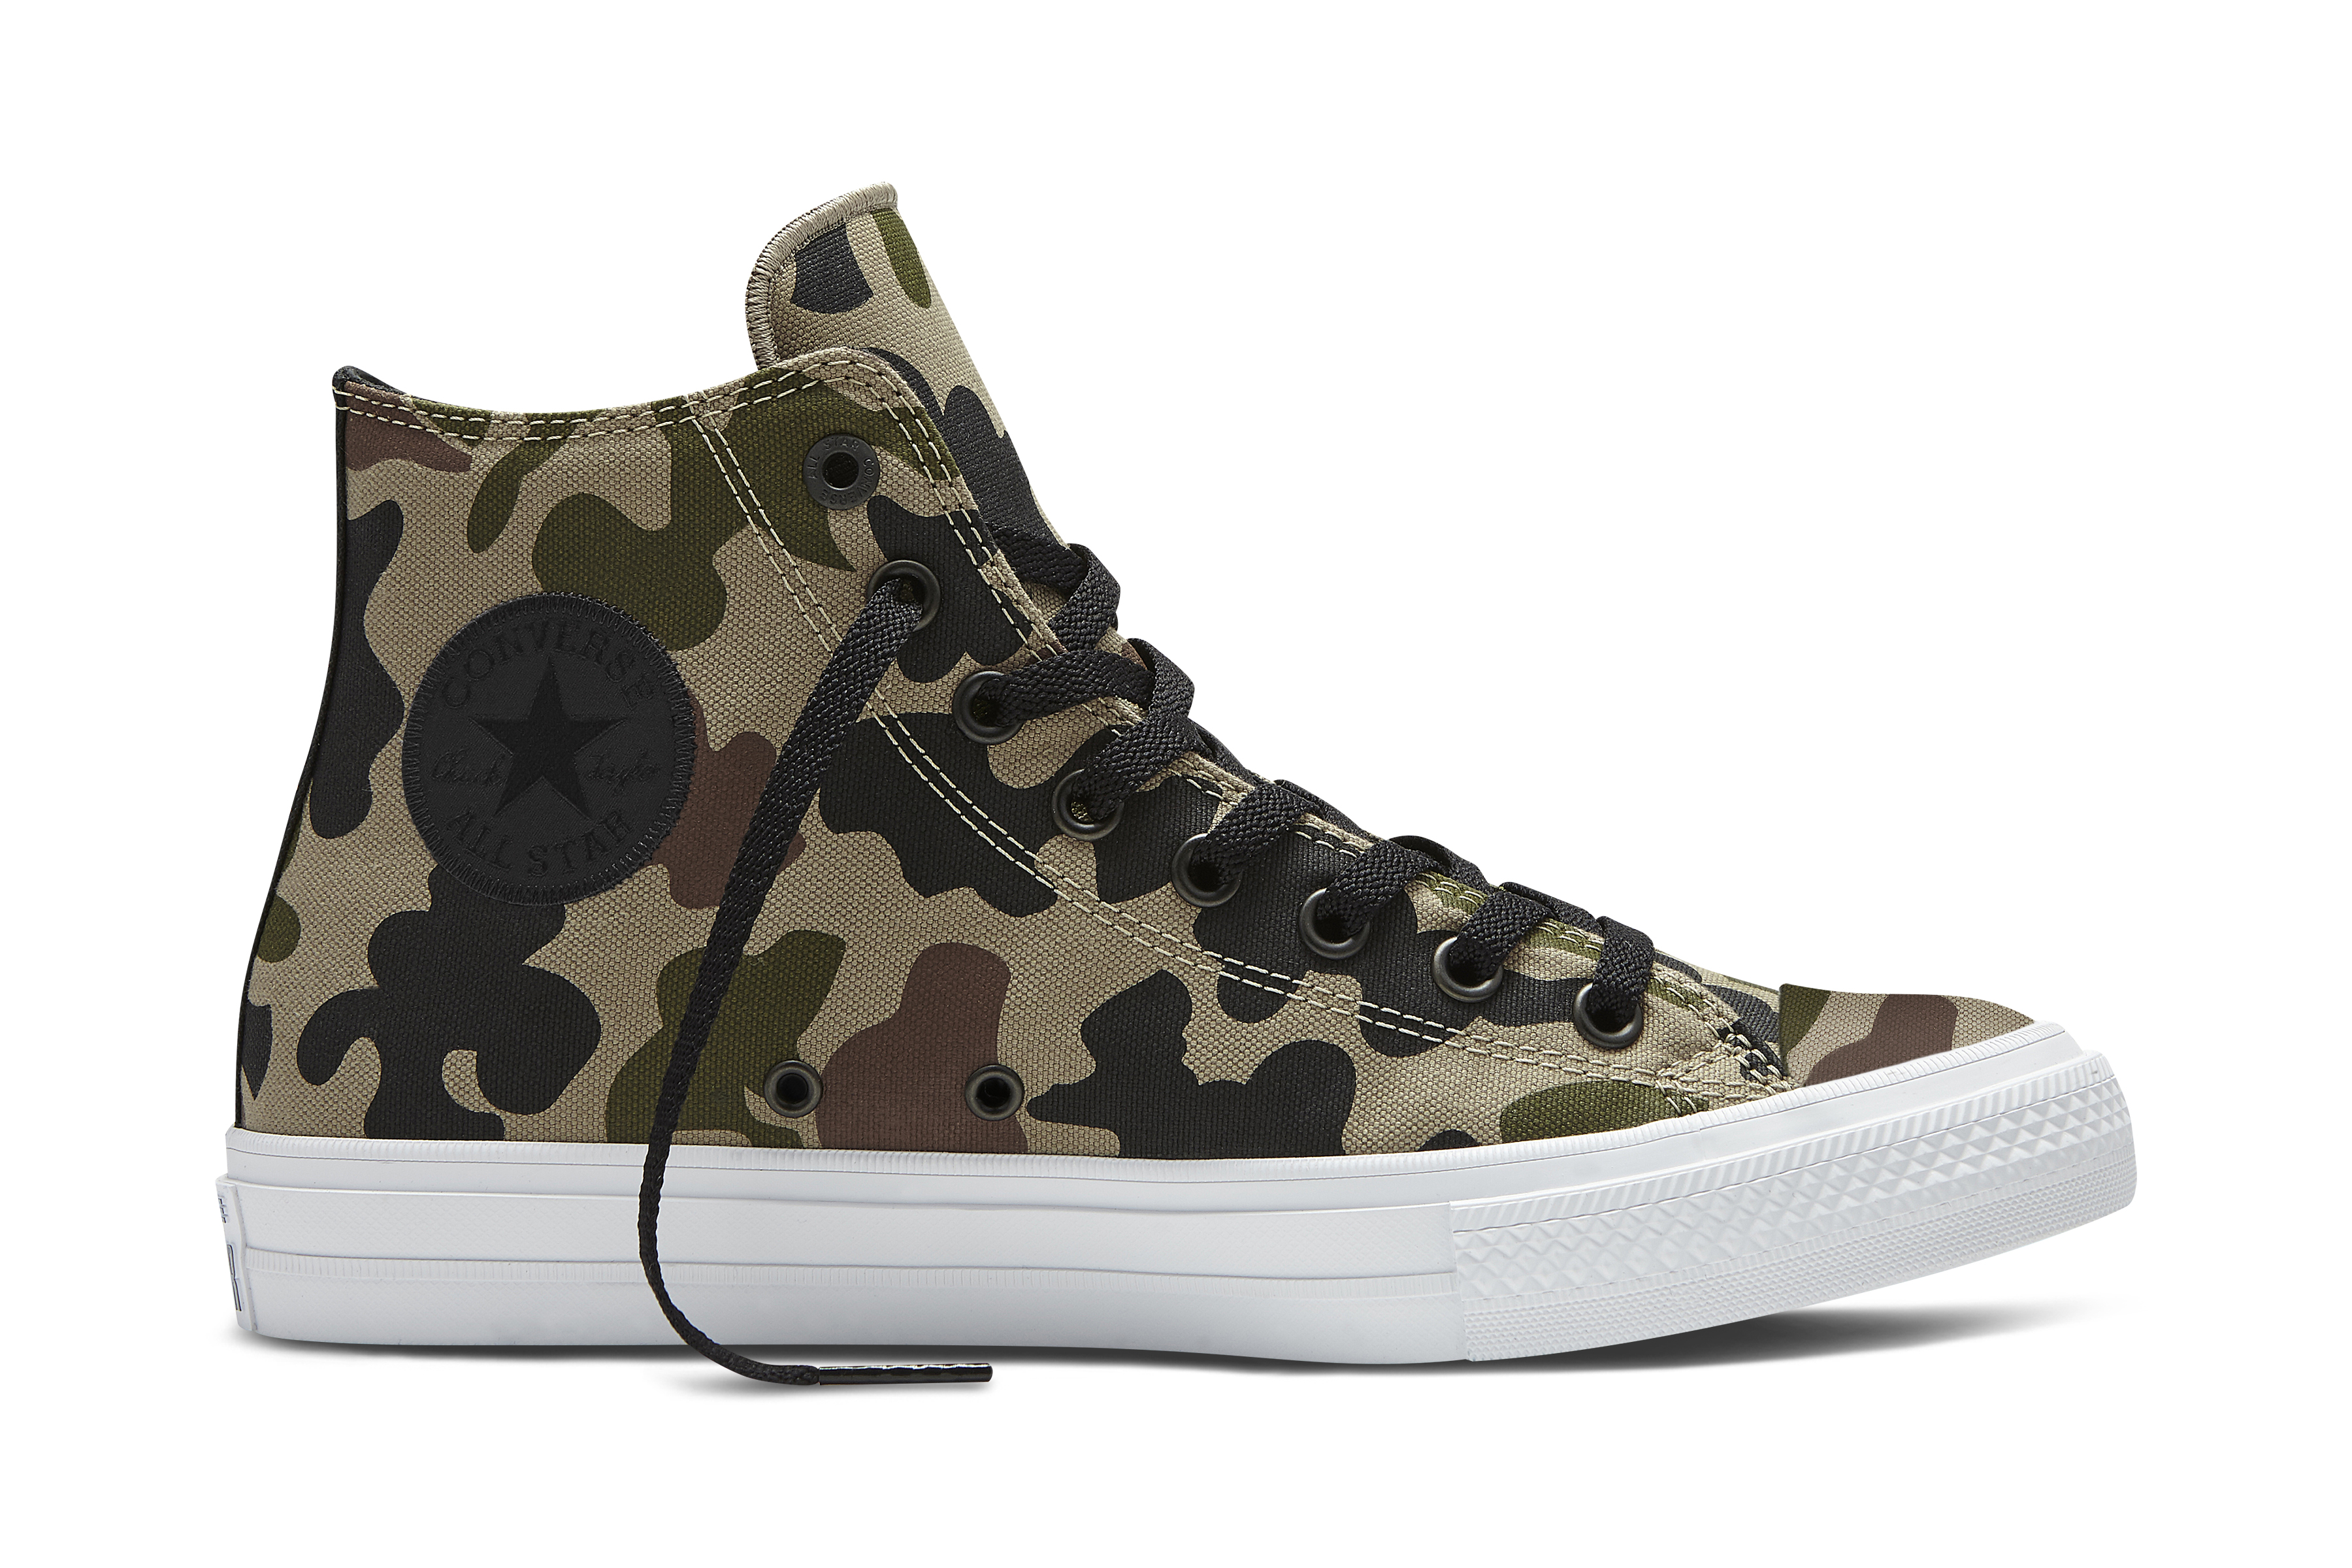 13736b5c6e97 CONVERSE Chuck Taylor II Winter 2016! - Mr. Cape Town